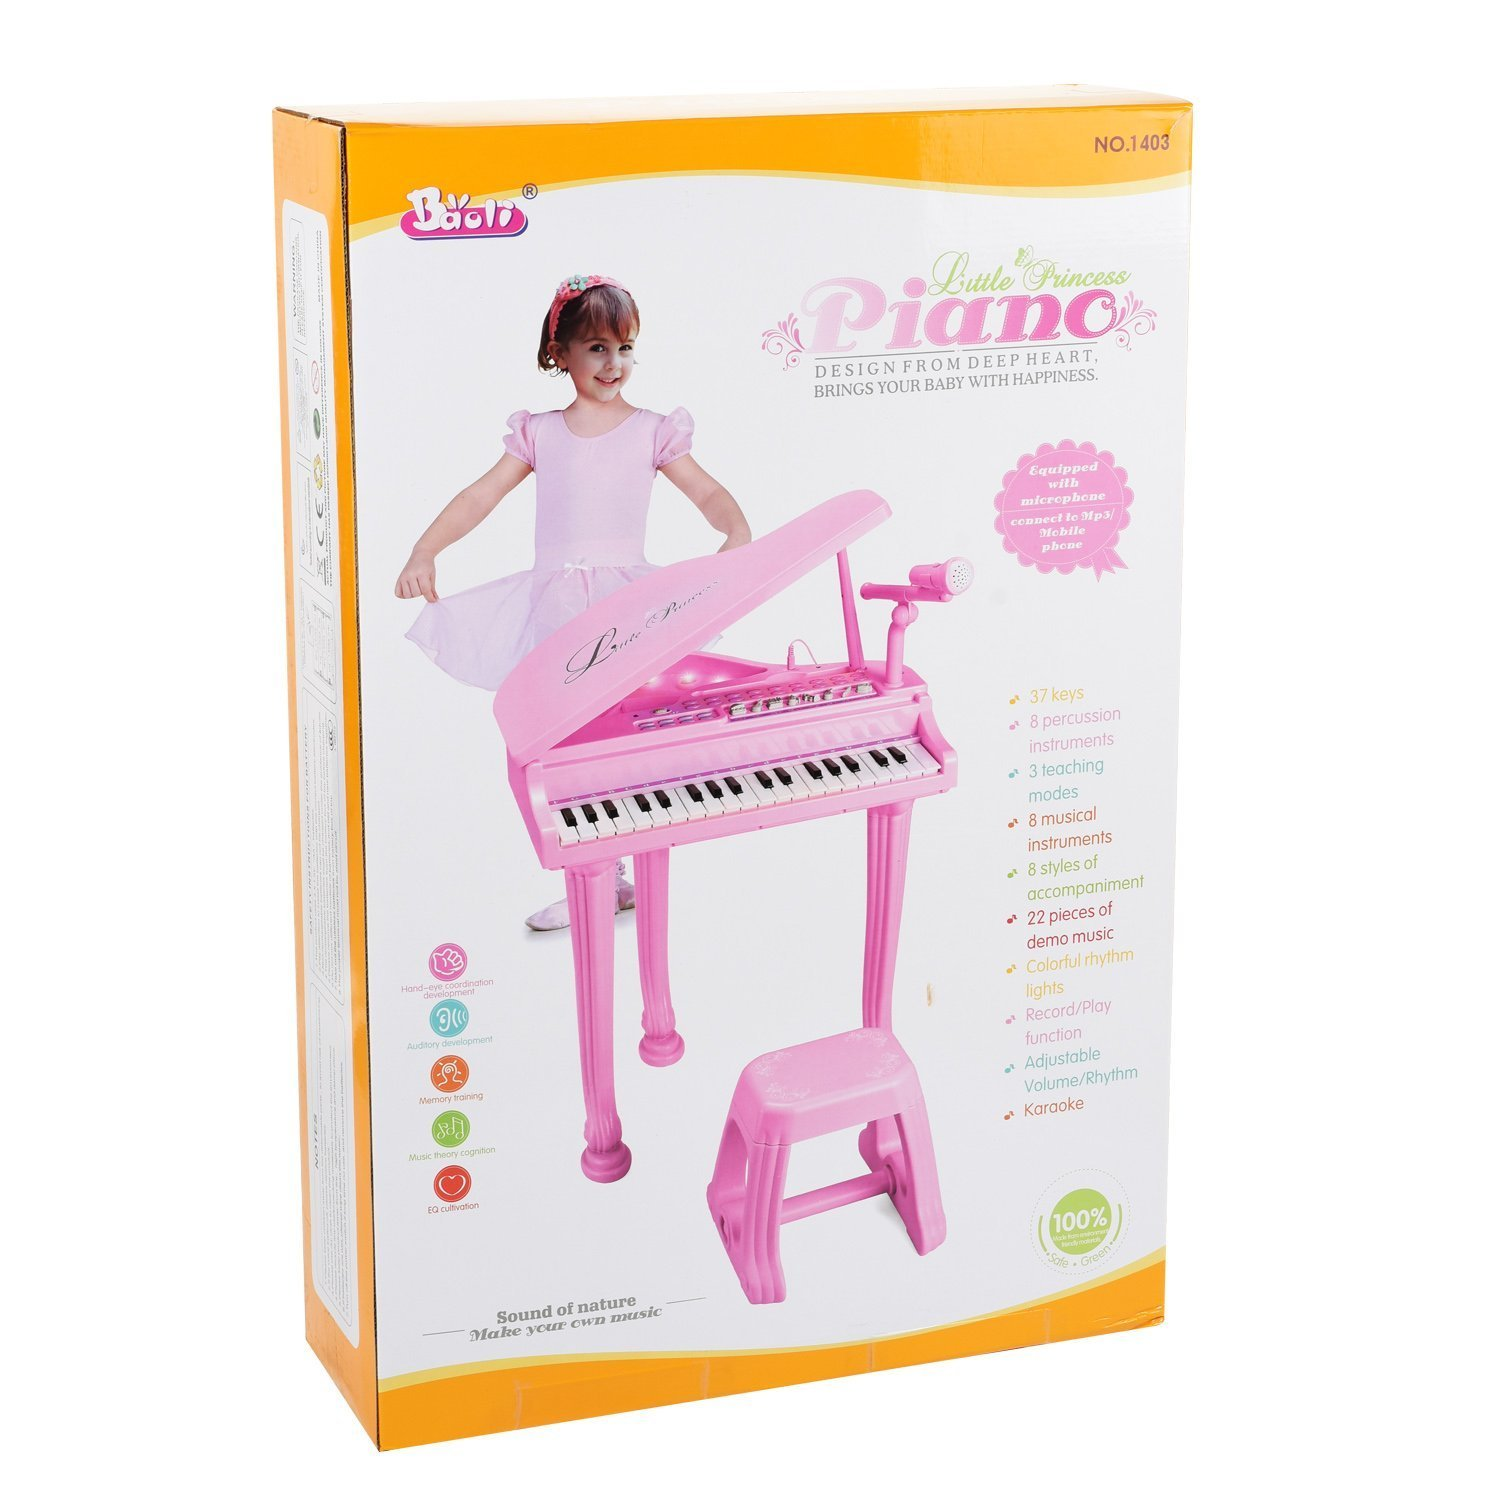 Piano Princesa educacional 37 keys com Banco e Microfone Celular MP3